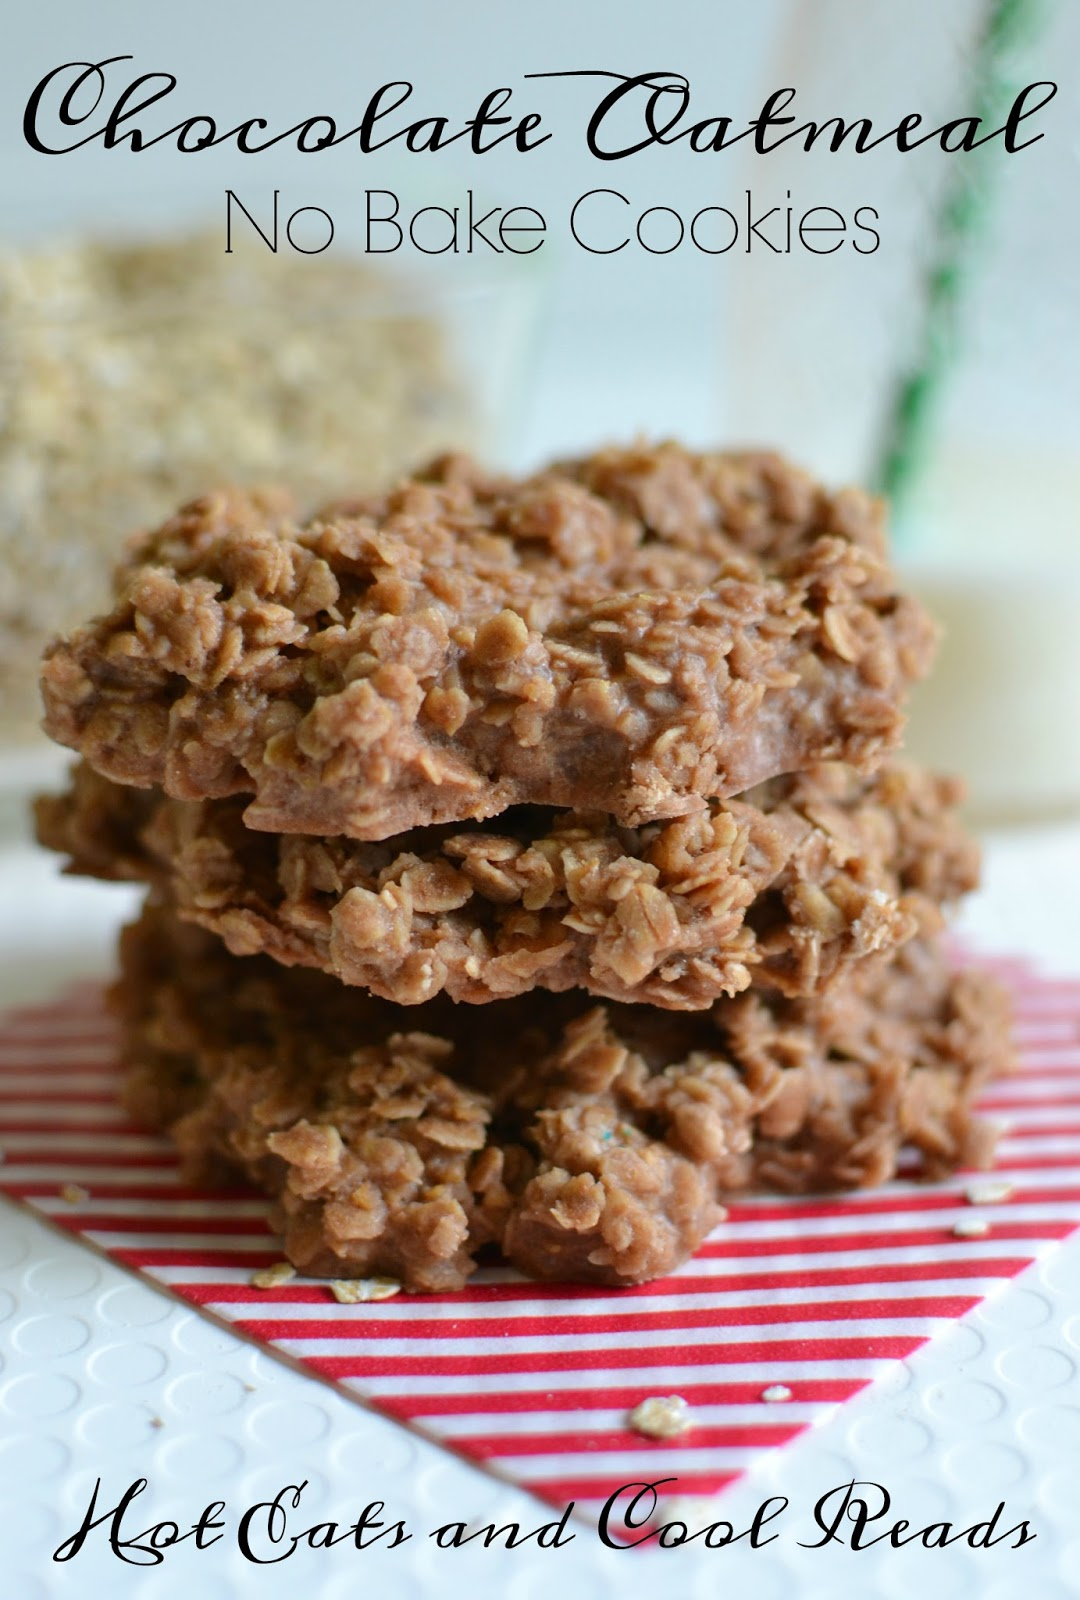 Hot Eats and Cool Reads: Chocolate Oatmeal No Bake Cookies Recipe ...